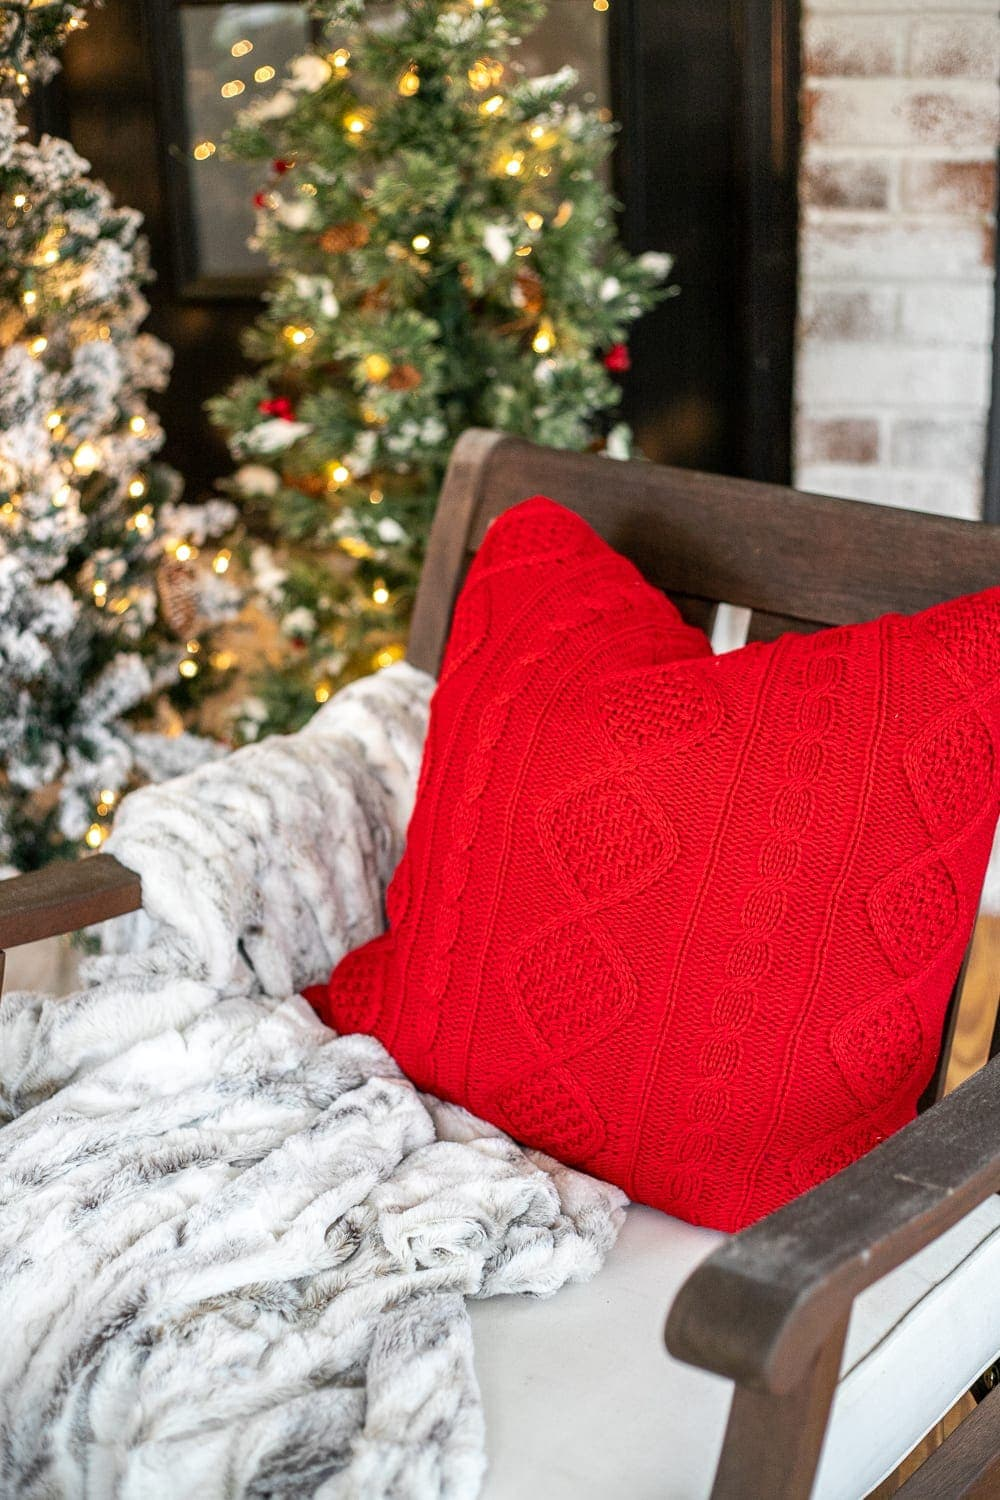 Cozy Christmas throw pillow and faux fur blanket